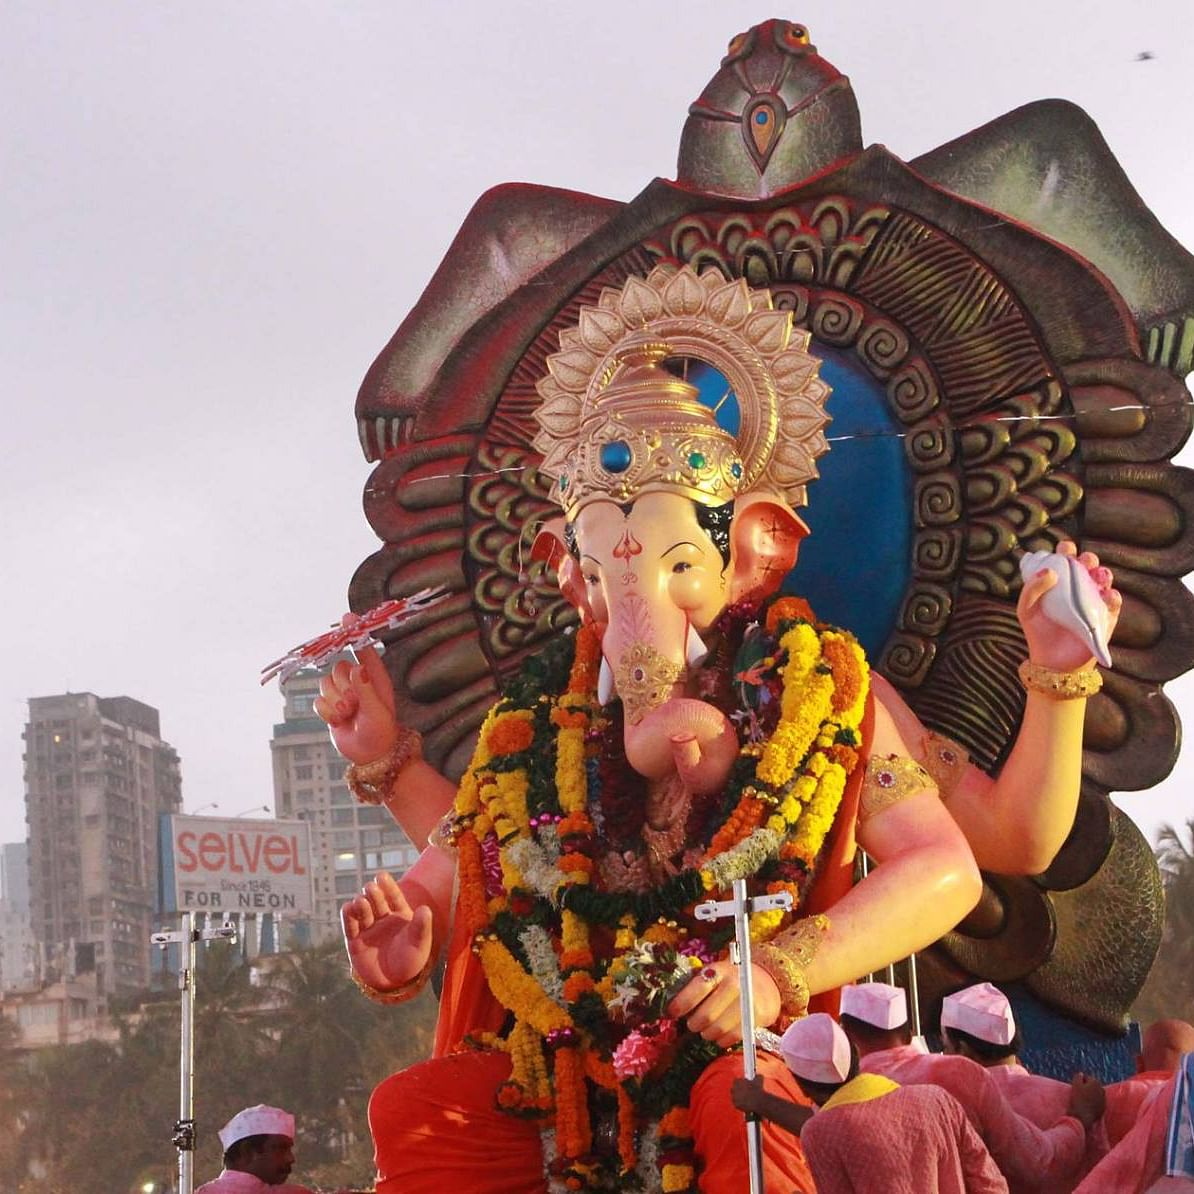 From online darshan to blood donation drives - How is Mumbai readying for a  Ganesh Utsav amid COVID-19